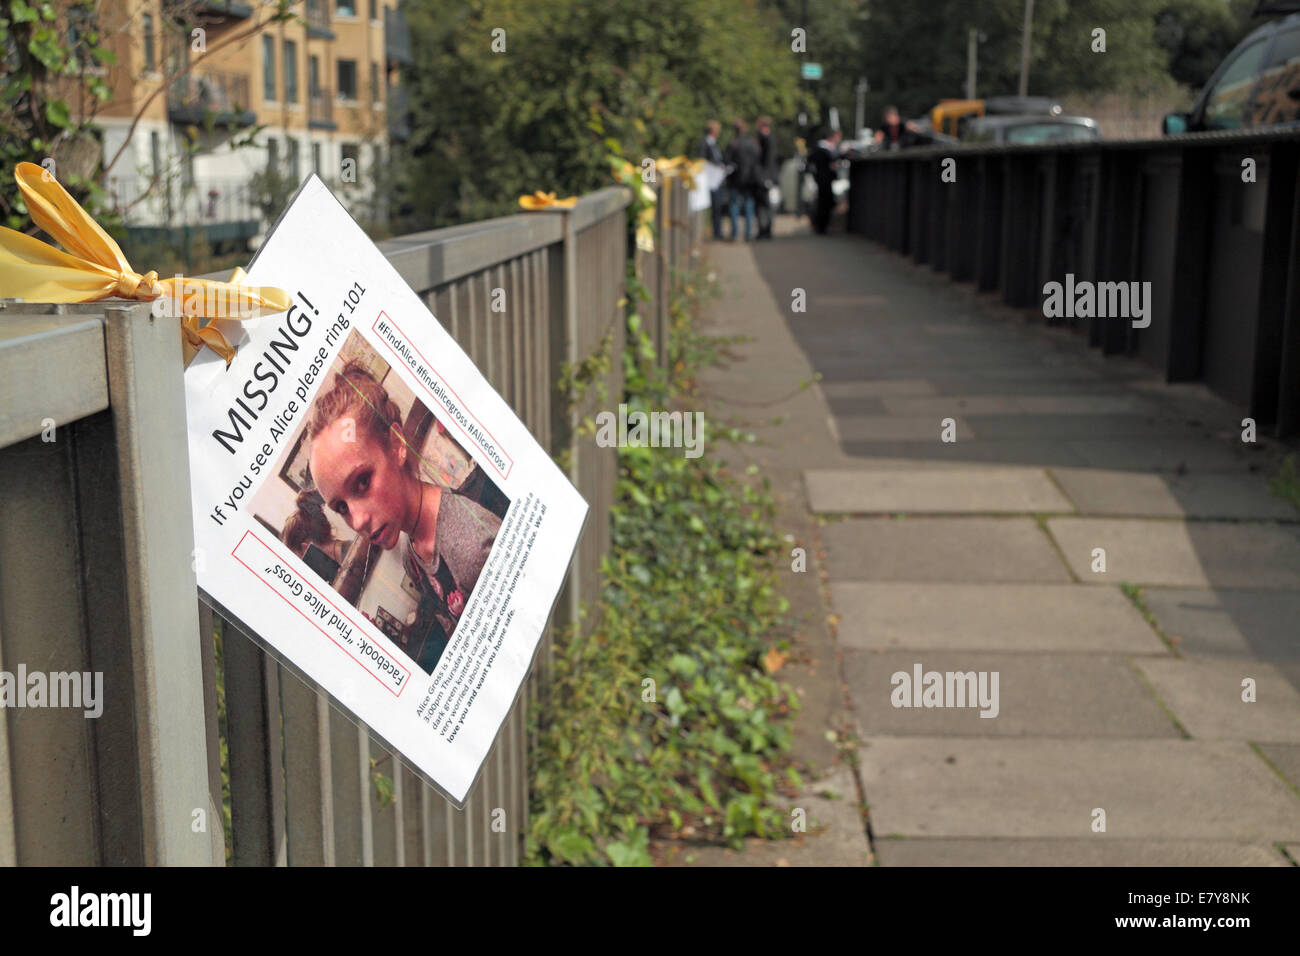 Missing Person Poster Uk Stock Photos & Missing Person